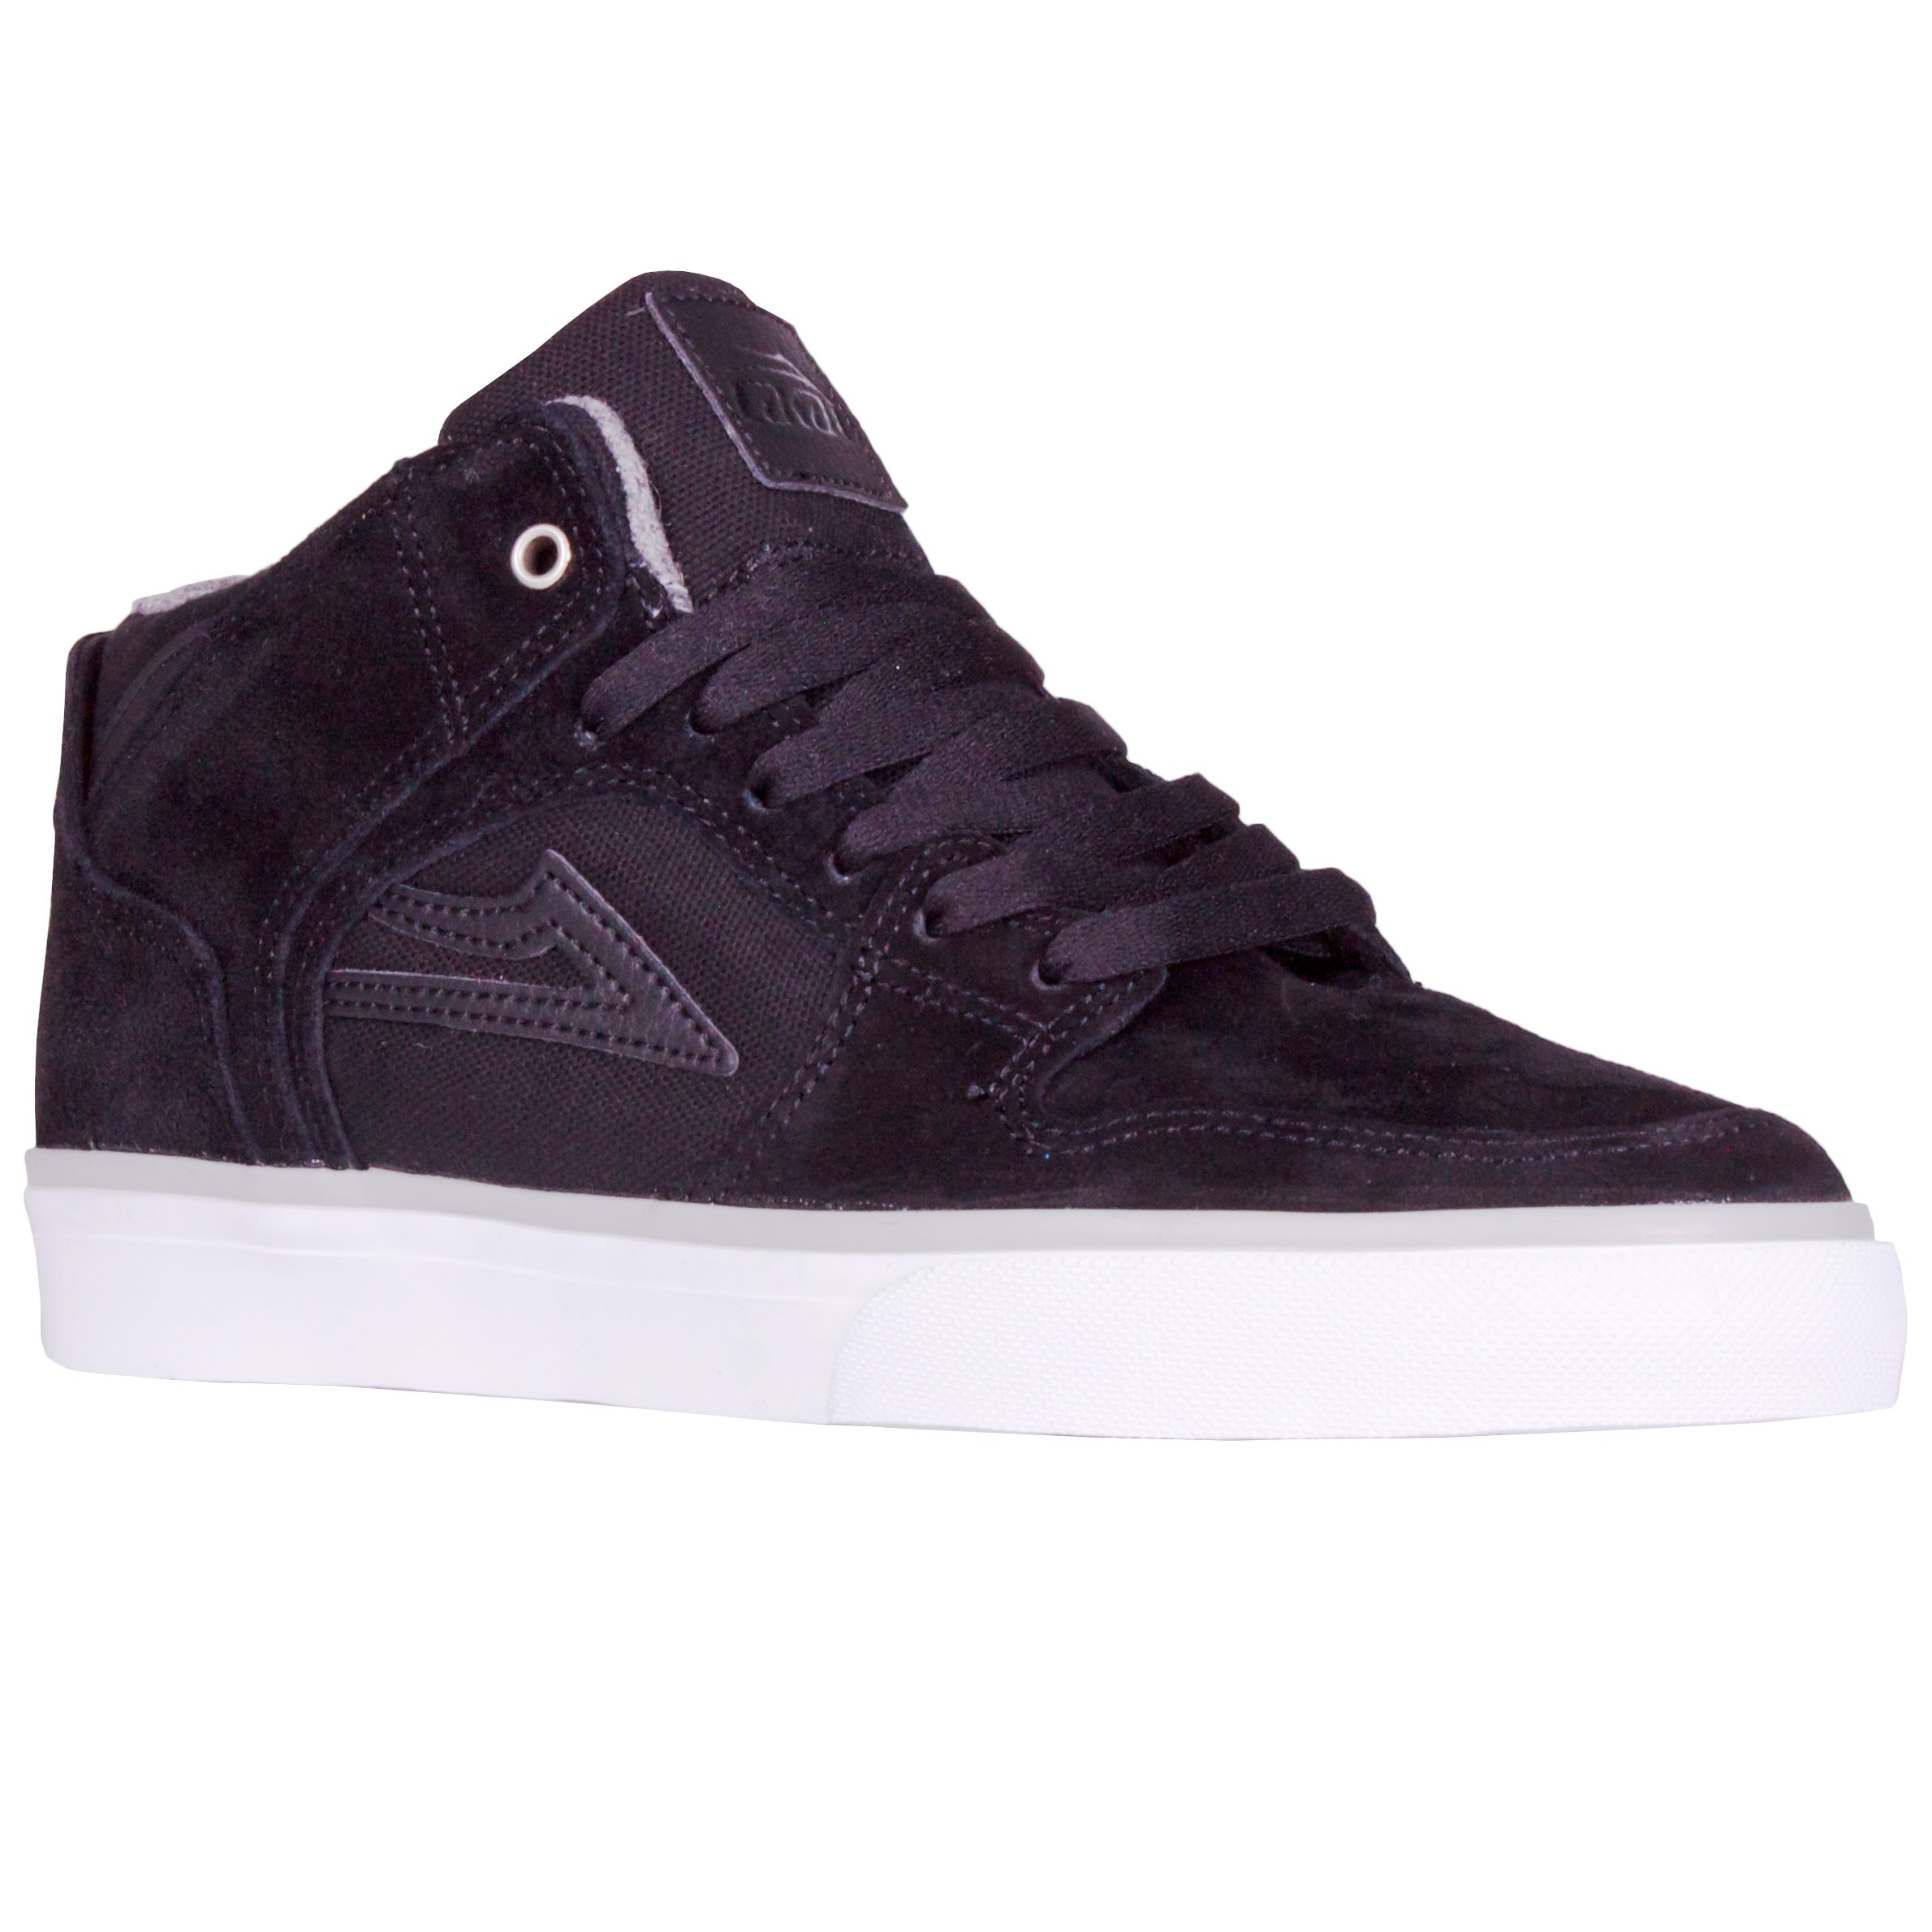 Lakai Telford Shoes - Black - 12.0